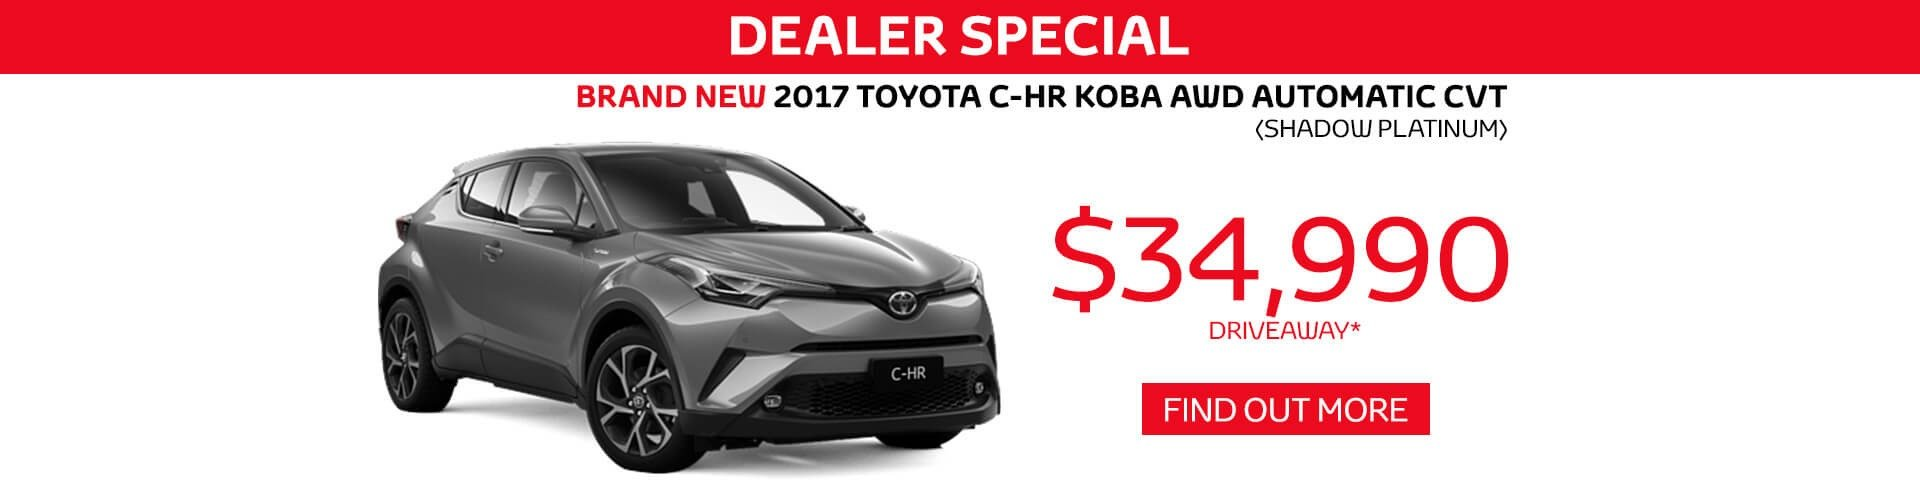 Hornsby Toyota CH-R Dealer Special